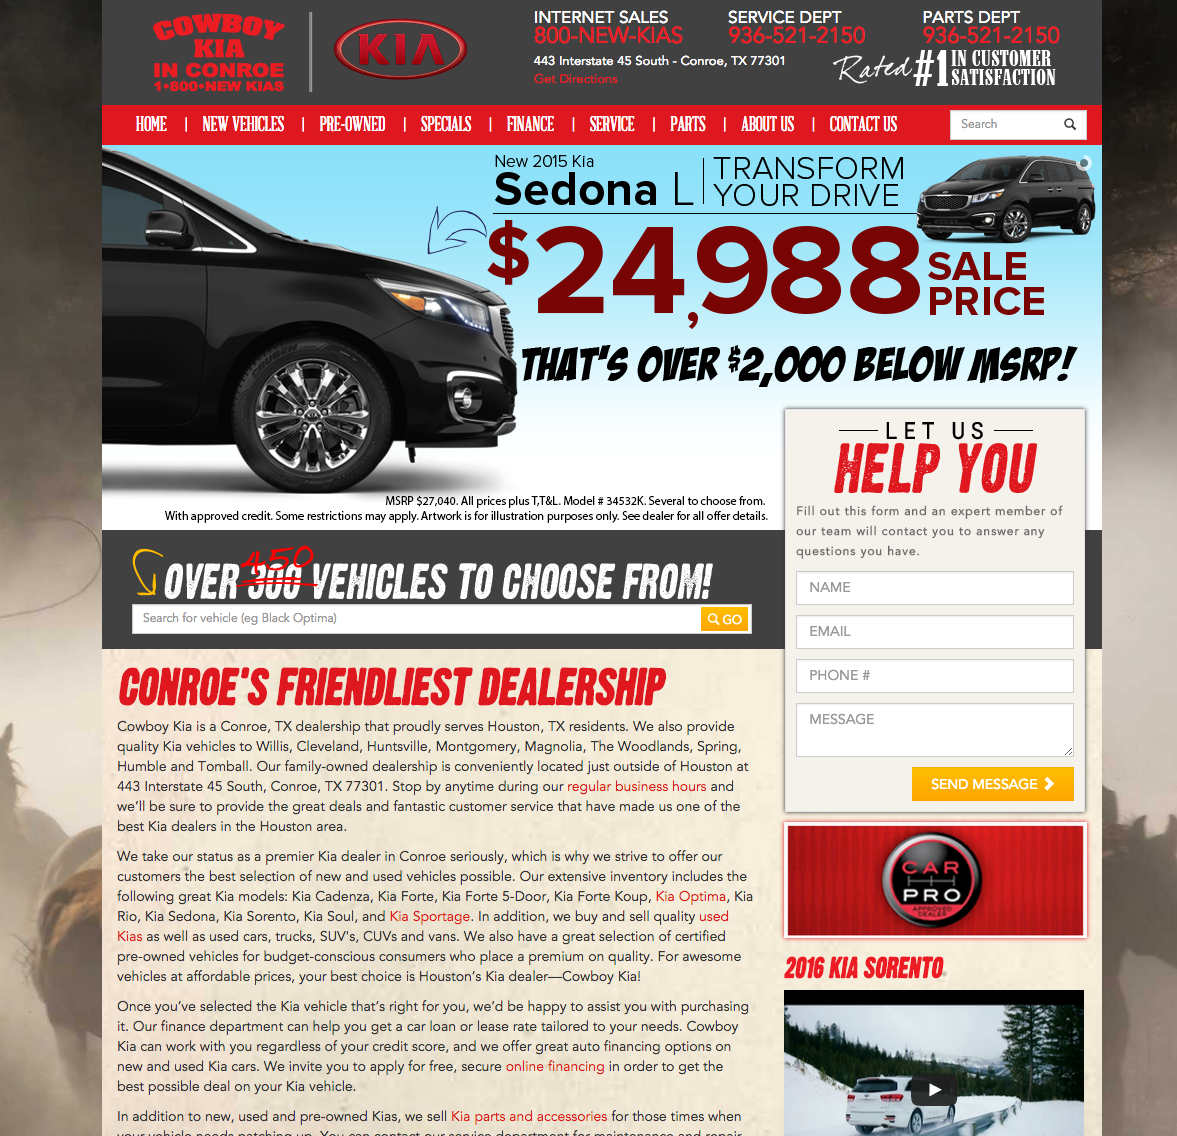 Dealerwebb Takes Dealer Website Banners to a Higher Level